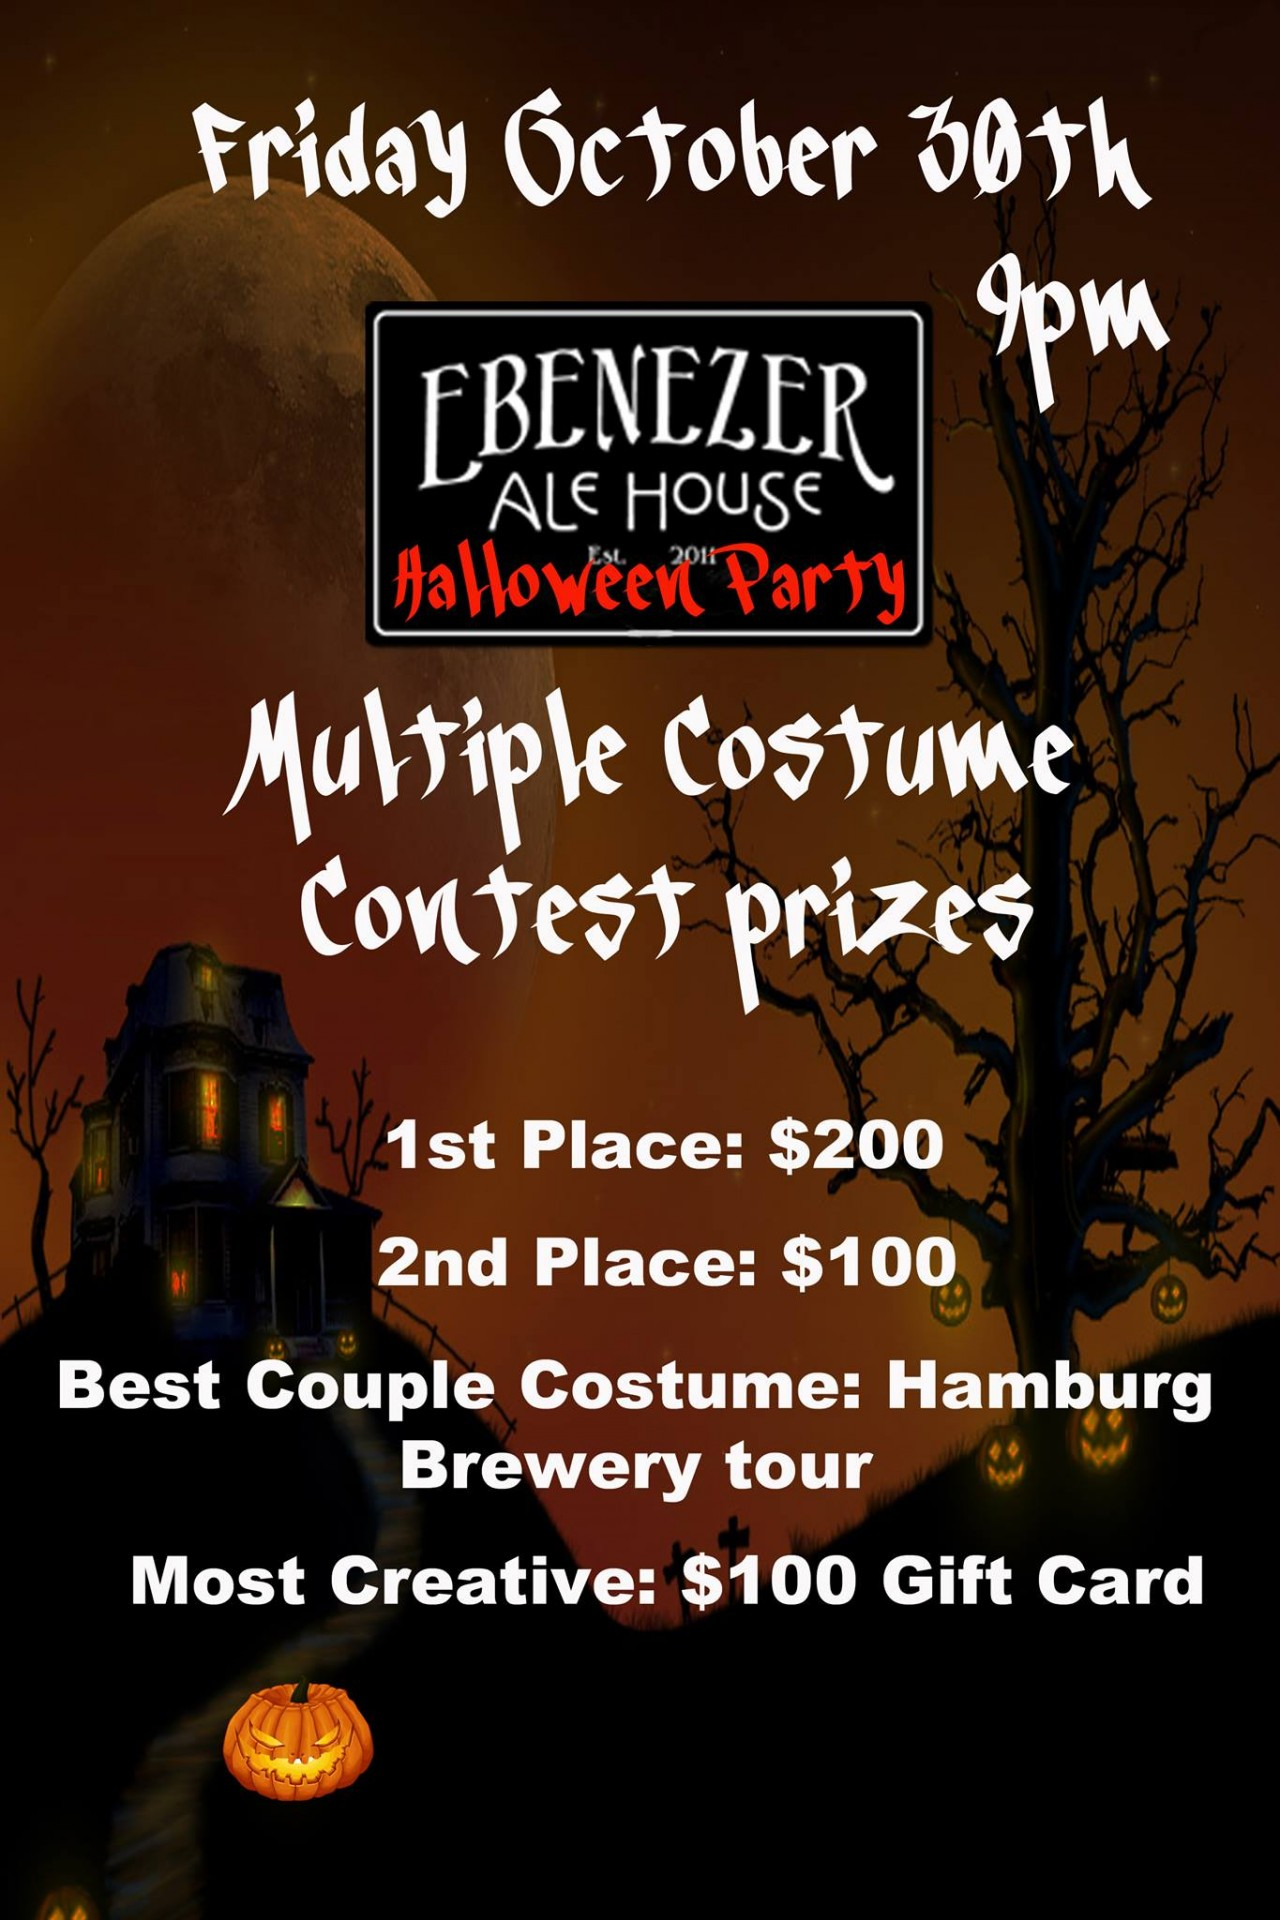 halloween party - ebenezer ale house | costume contest, cash prizes